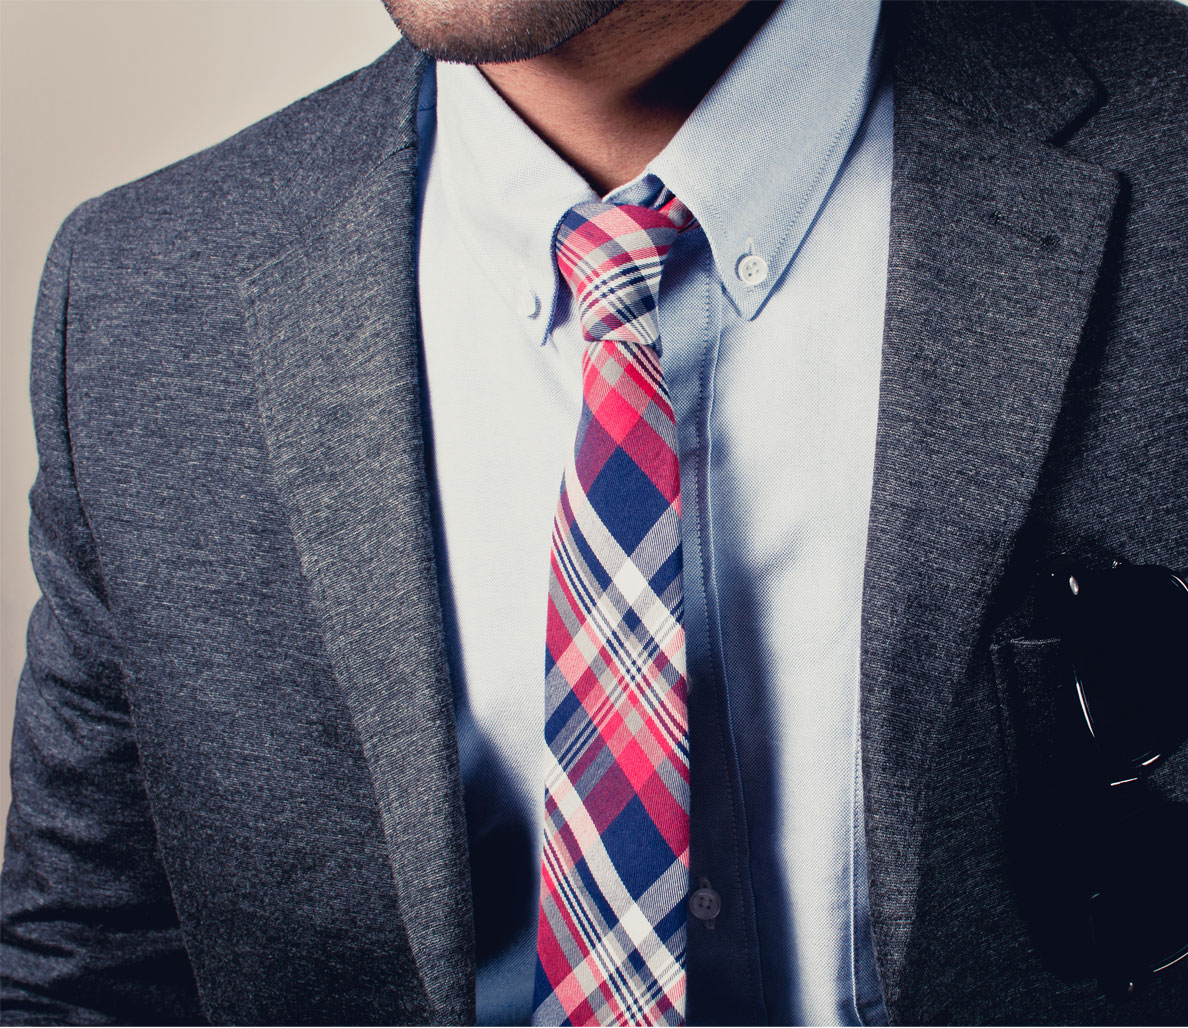 Men's Sports Jackets: Here are the Best | Men's Journal